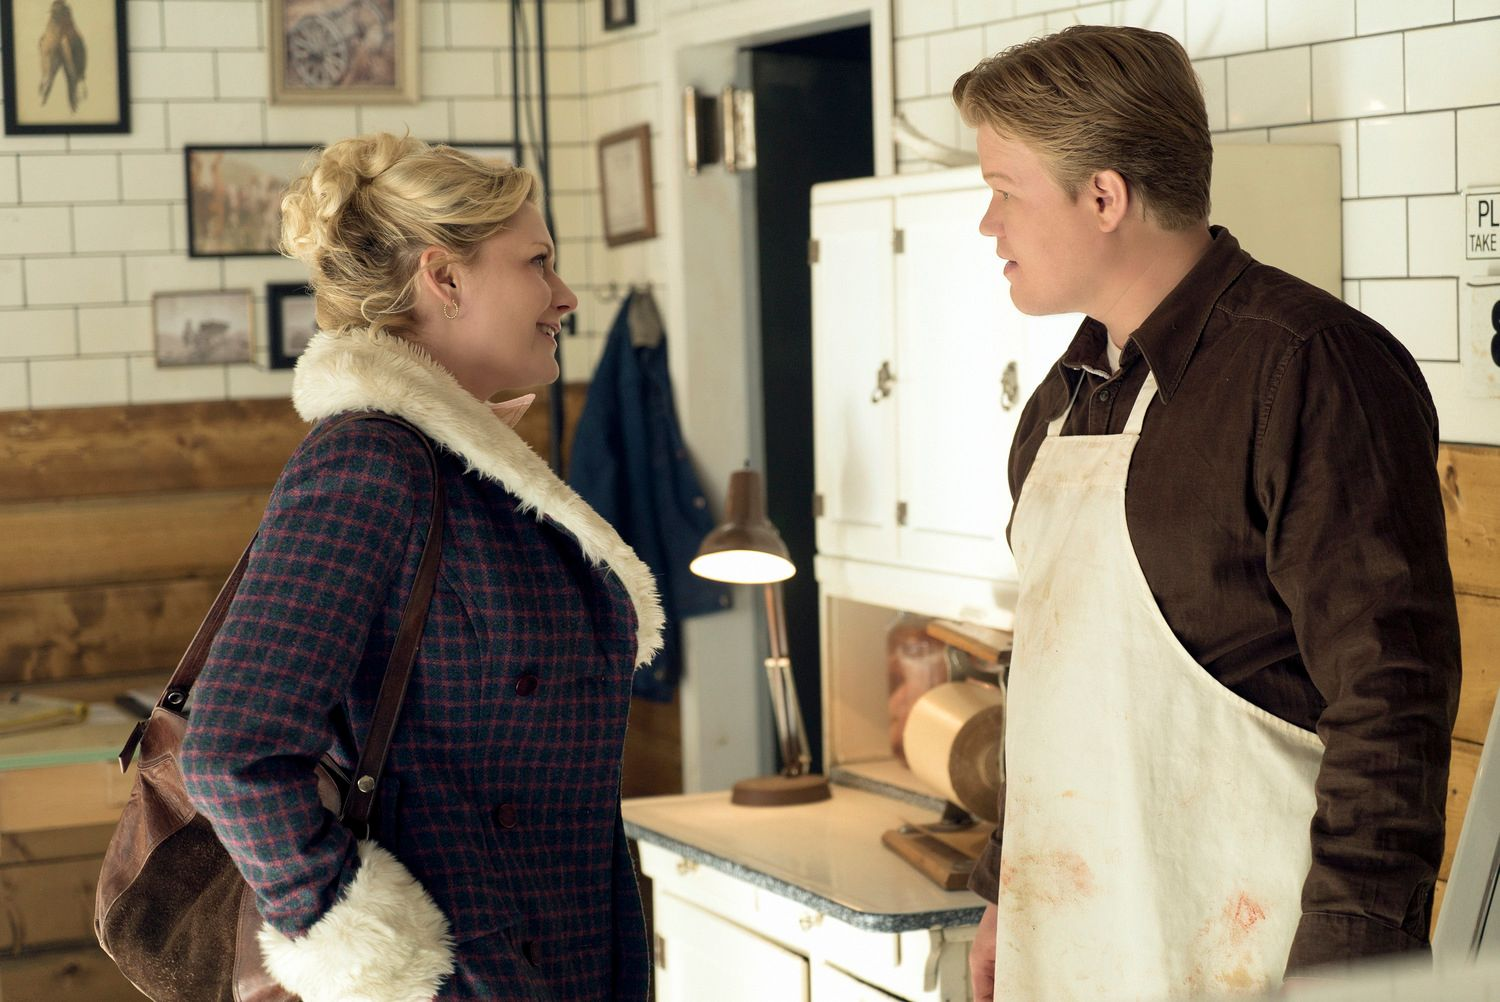 fargo recap the myth of sisyphus season episode collider fargo season 2 sisyphus kirsten dunst jesse plemmons